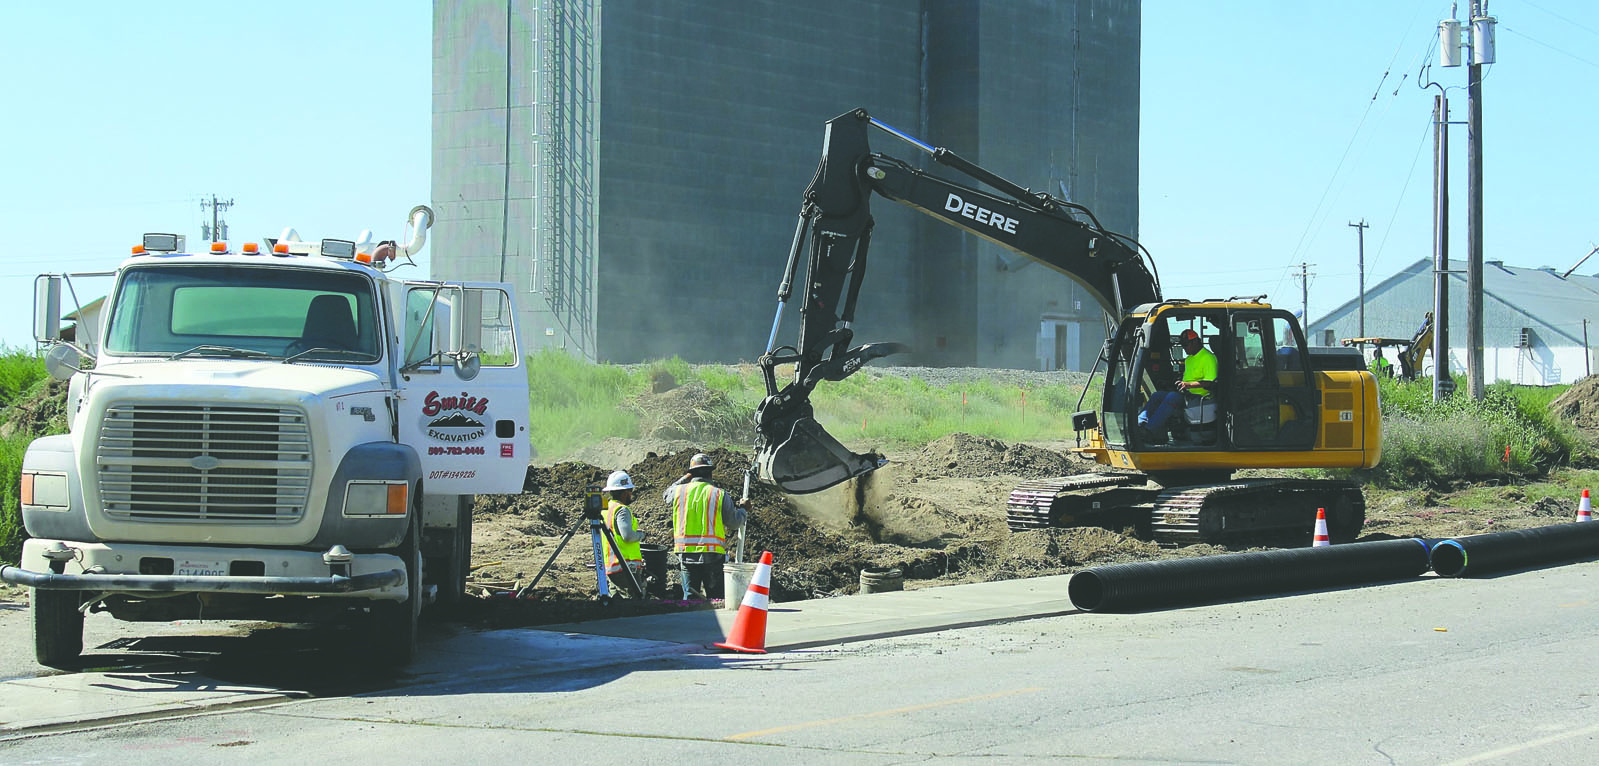 Crews were busy with excavation work along Railroad Avenue